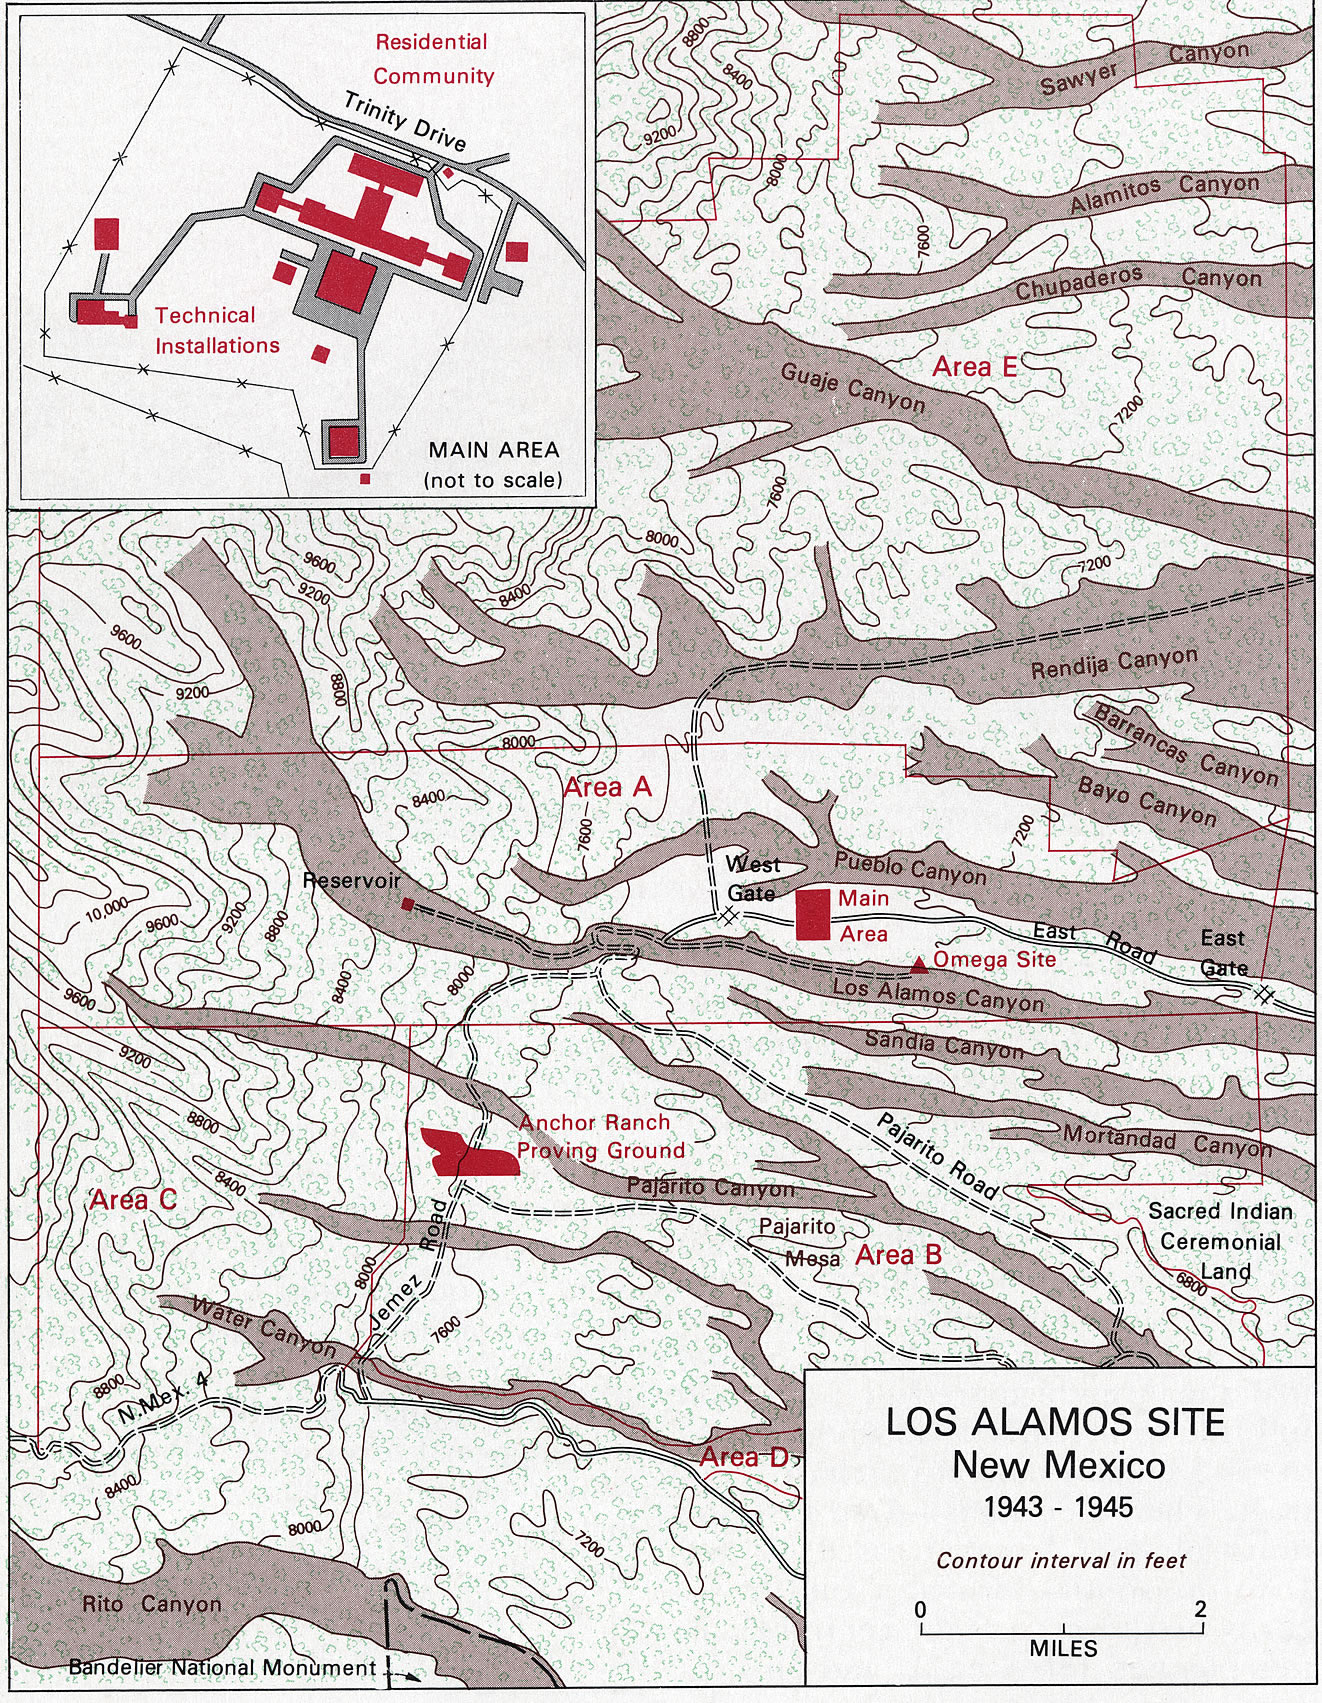 Los Alamos site map